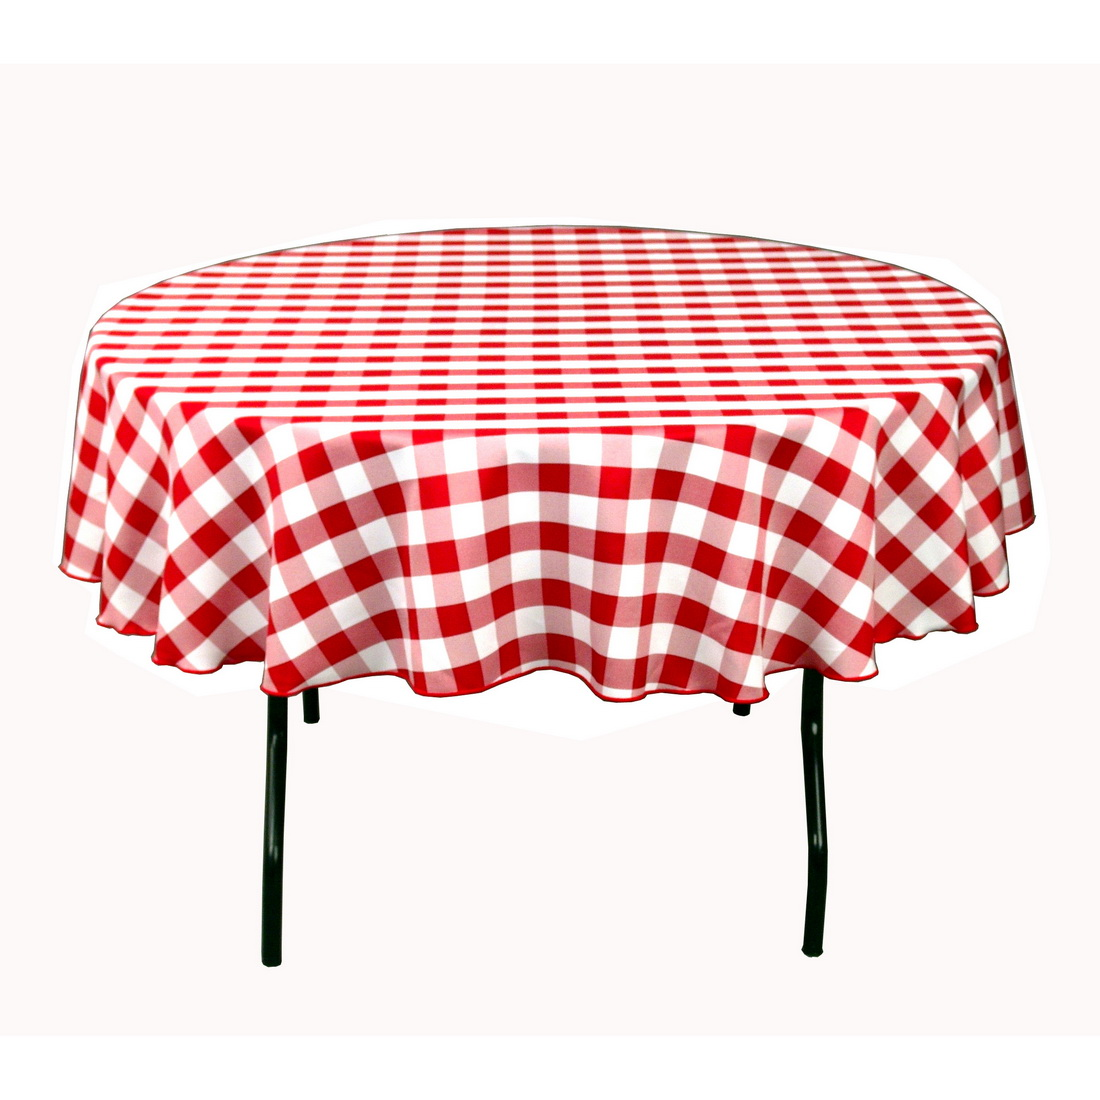 Similiar Red Checkered Cloth Tablecloths Keywords.